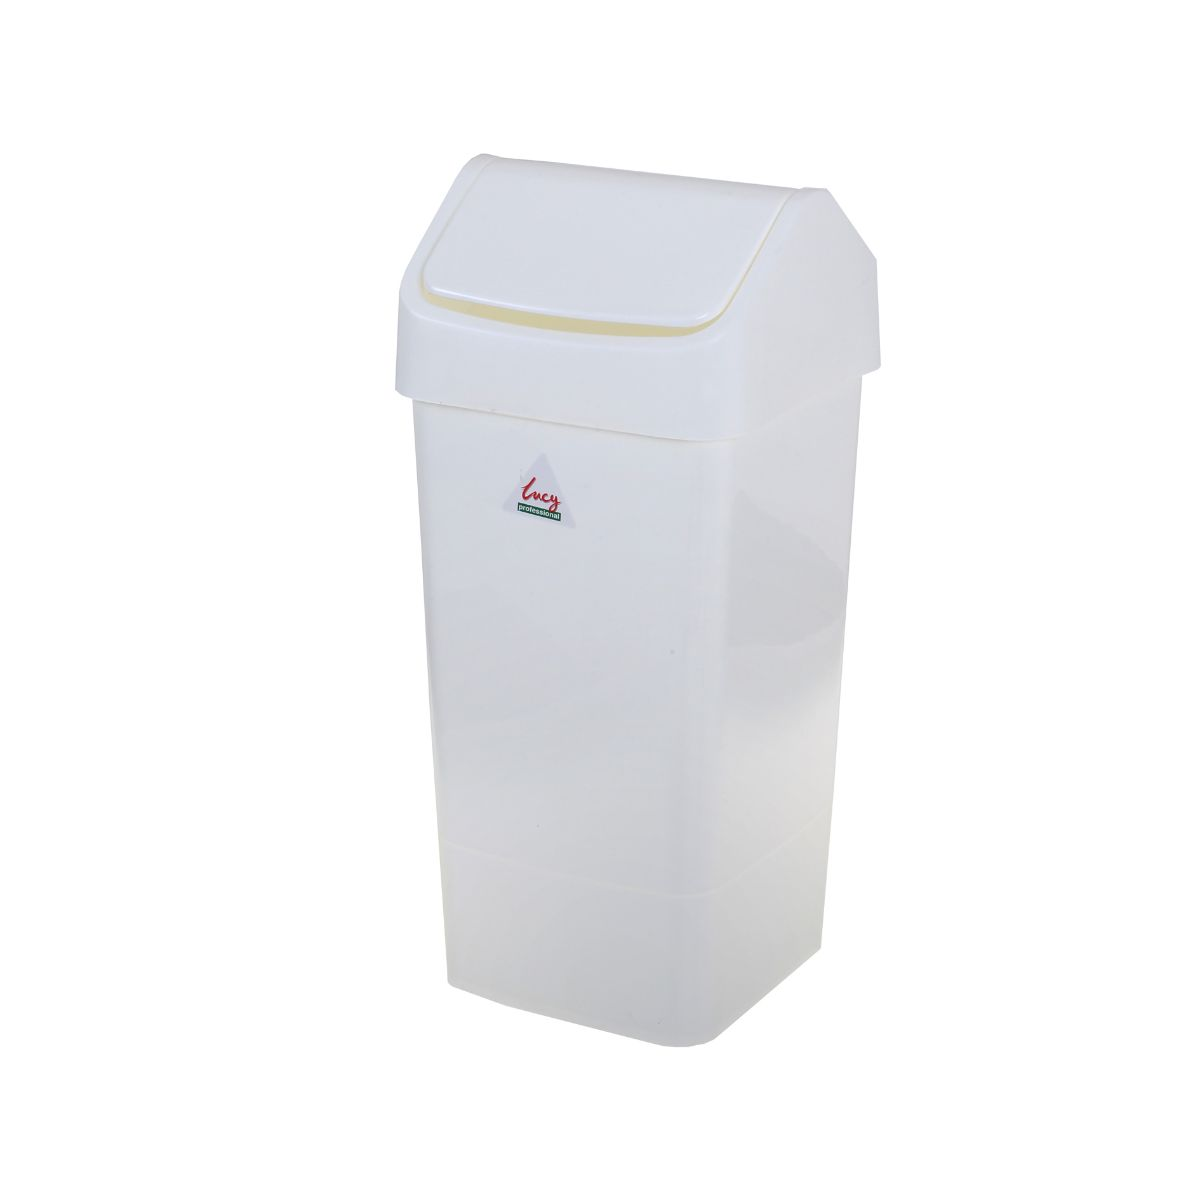 Lucy Swing Top Bin 50 Litre, White.